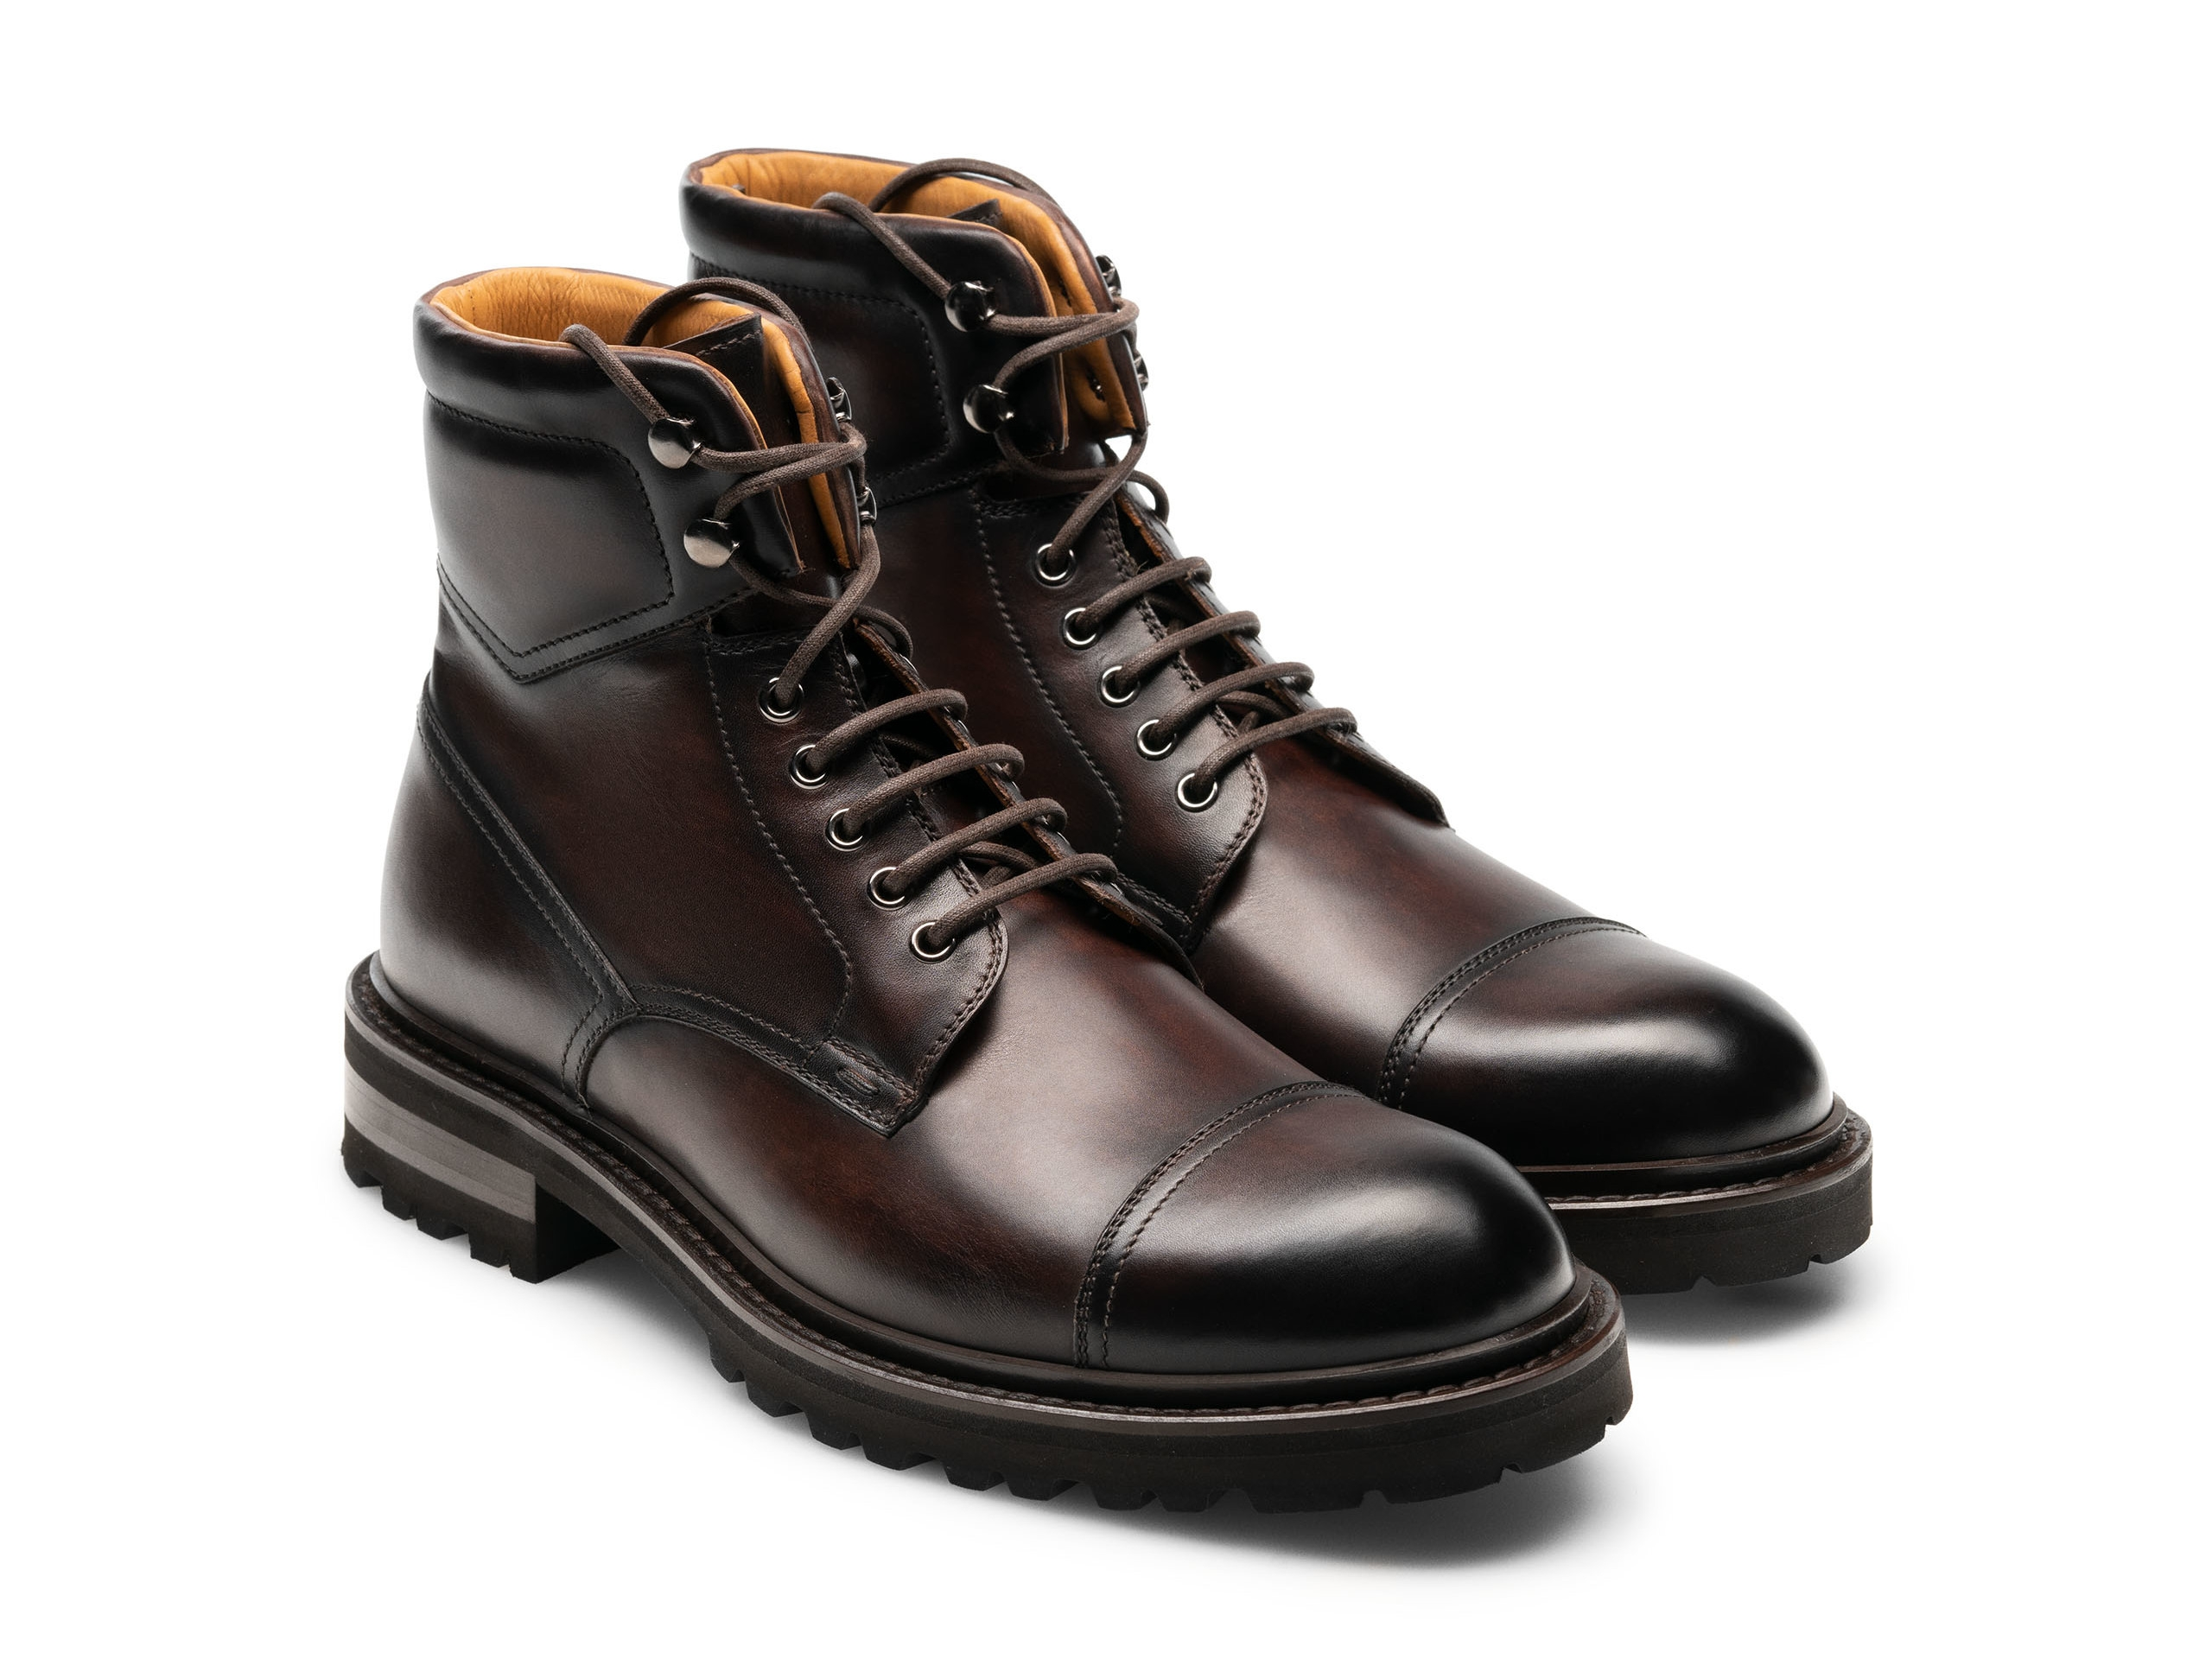 Pair of the Armade II Brown